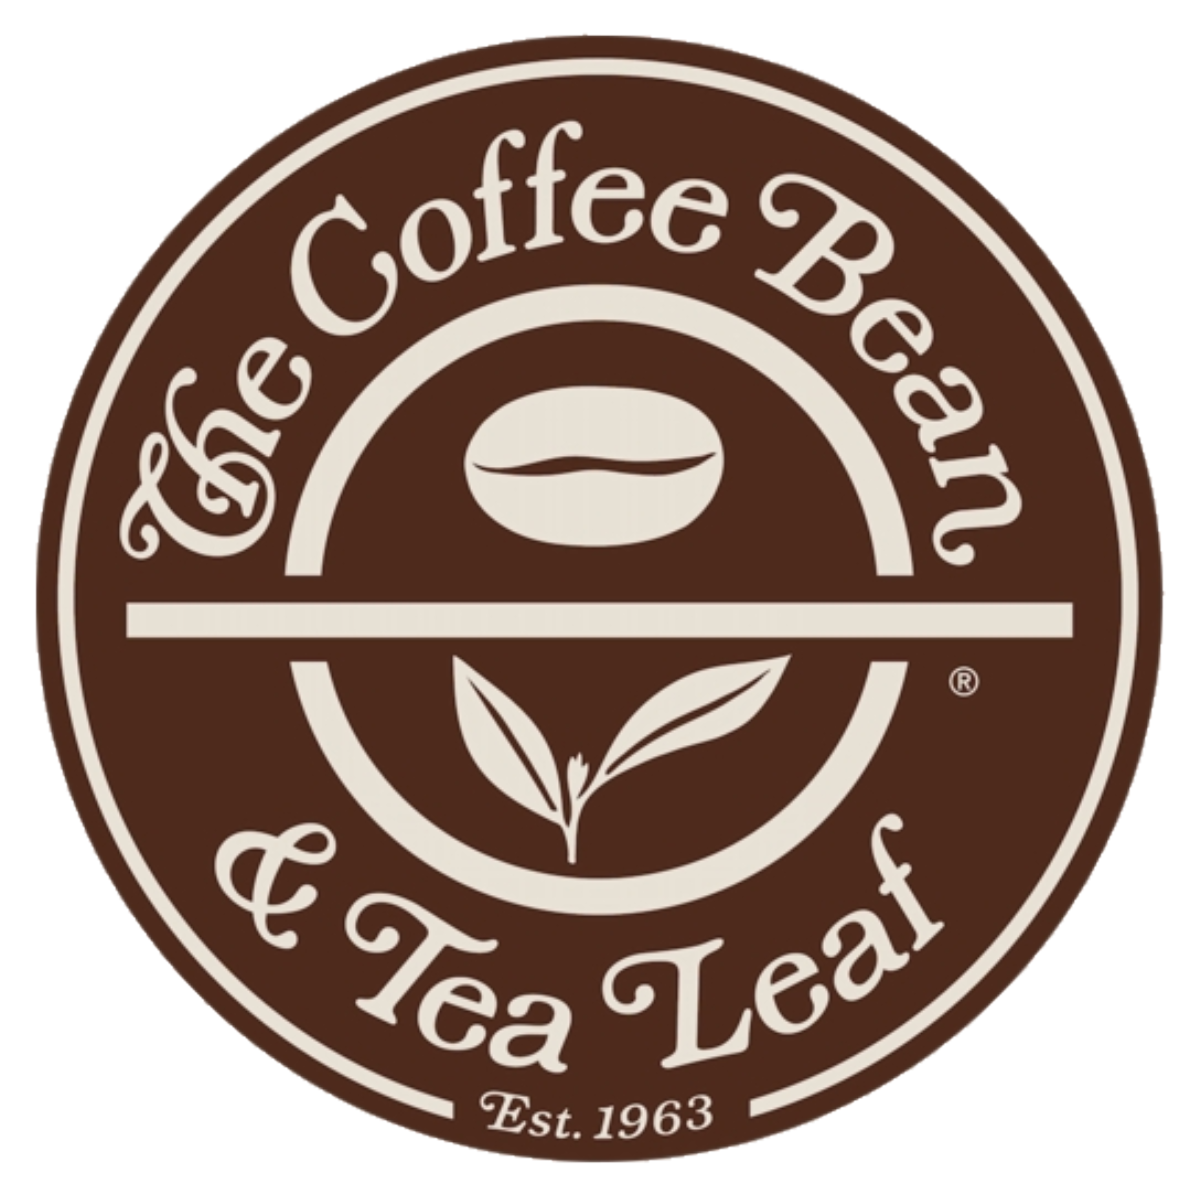 Coffee Beans & Tea Leaf